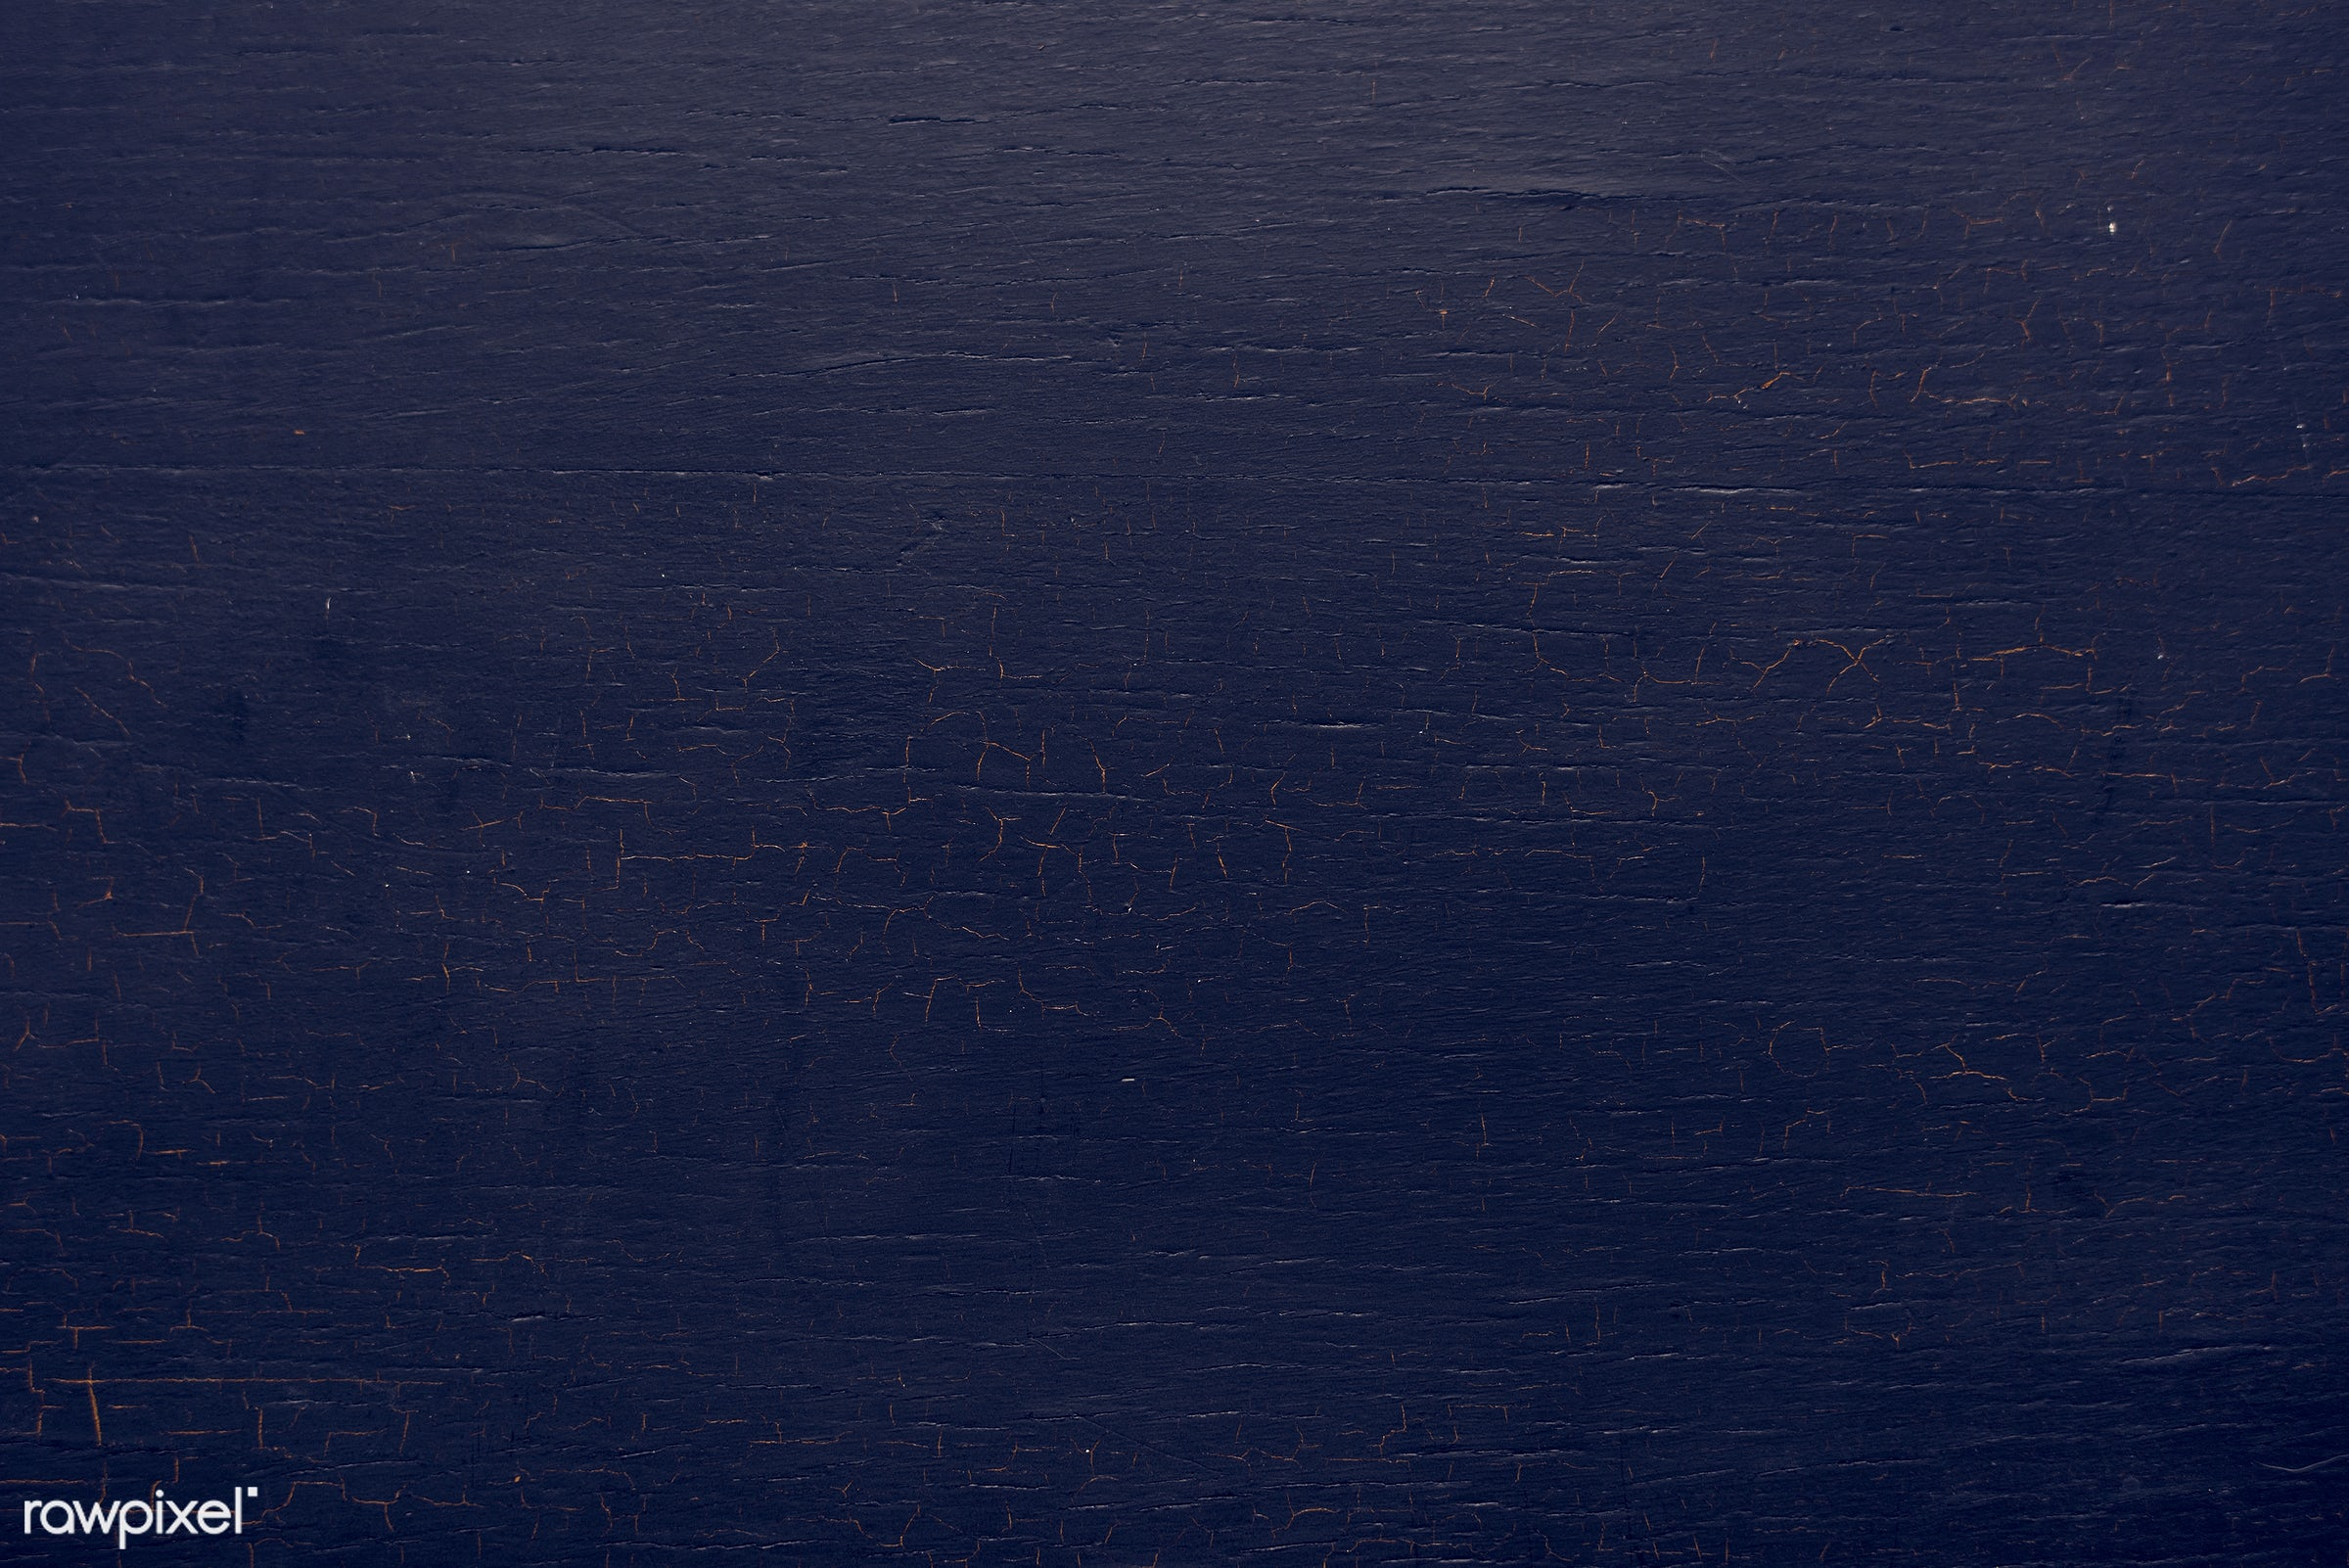 panel, nobody, copy space, surface, wood, simple, plank, space, backdrop, grunge, style, black, timber, structure, creative...